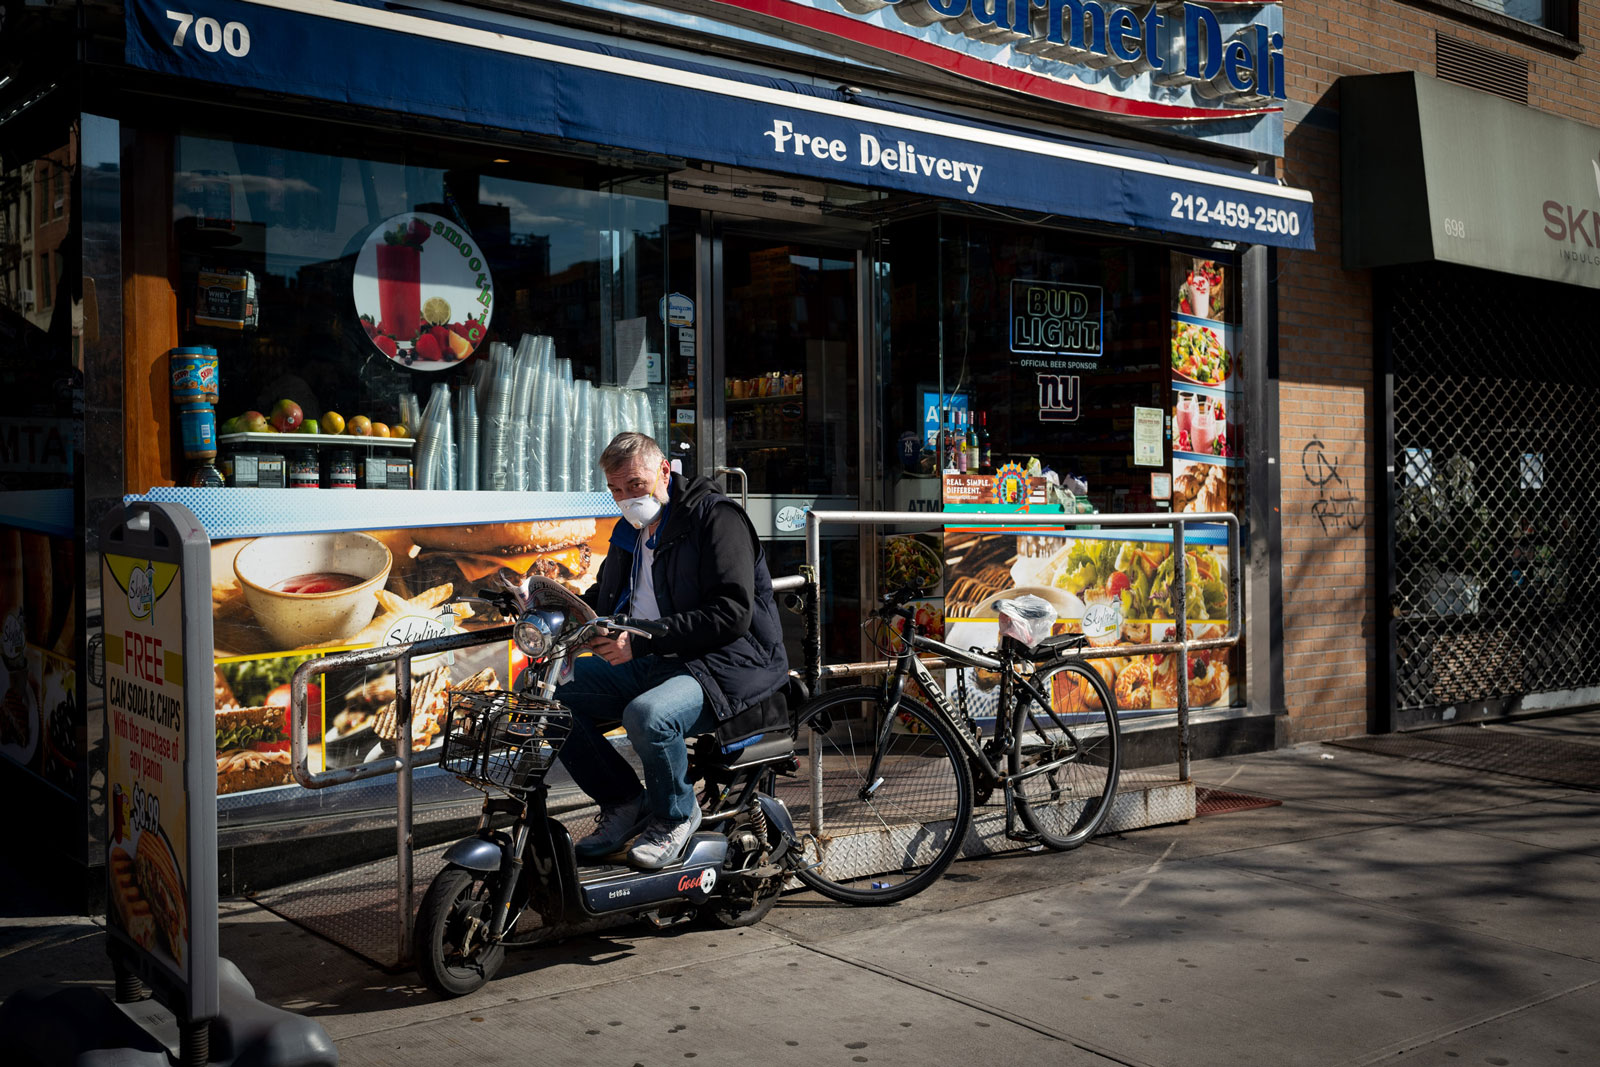 A man reading the paper outside a deli on Tenth Avenue, Hells Kitchen, New York City, March 24, 2020